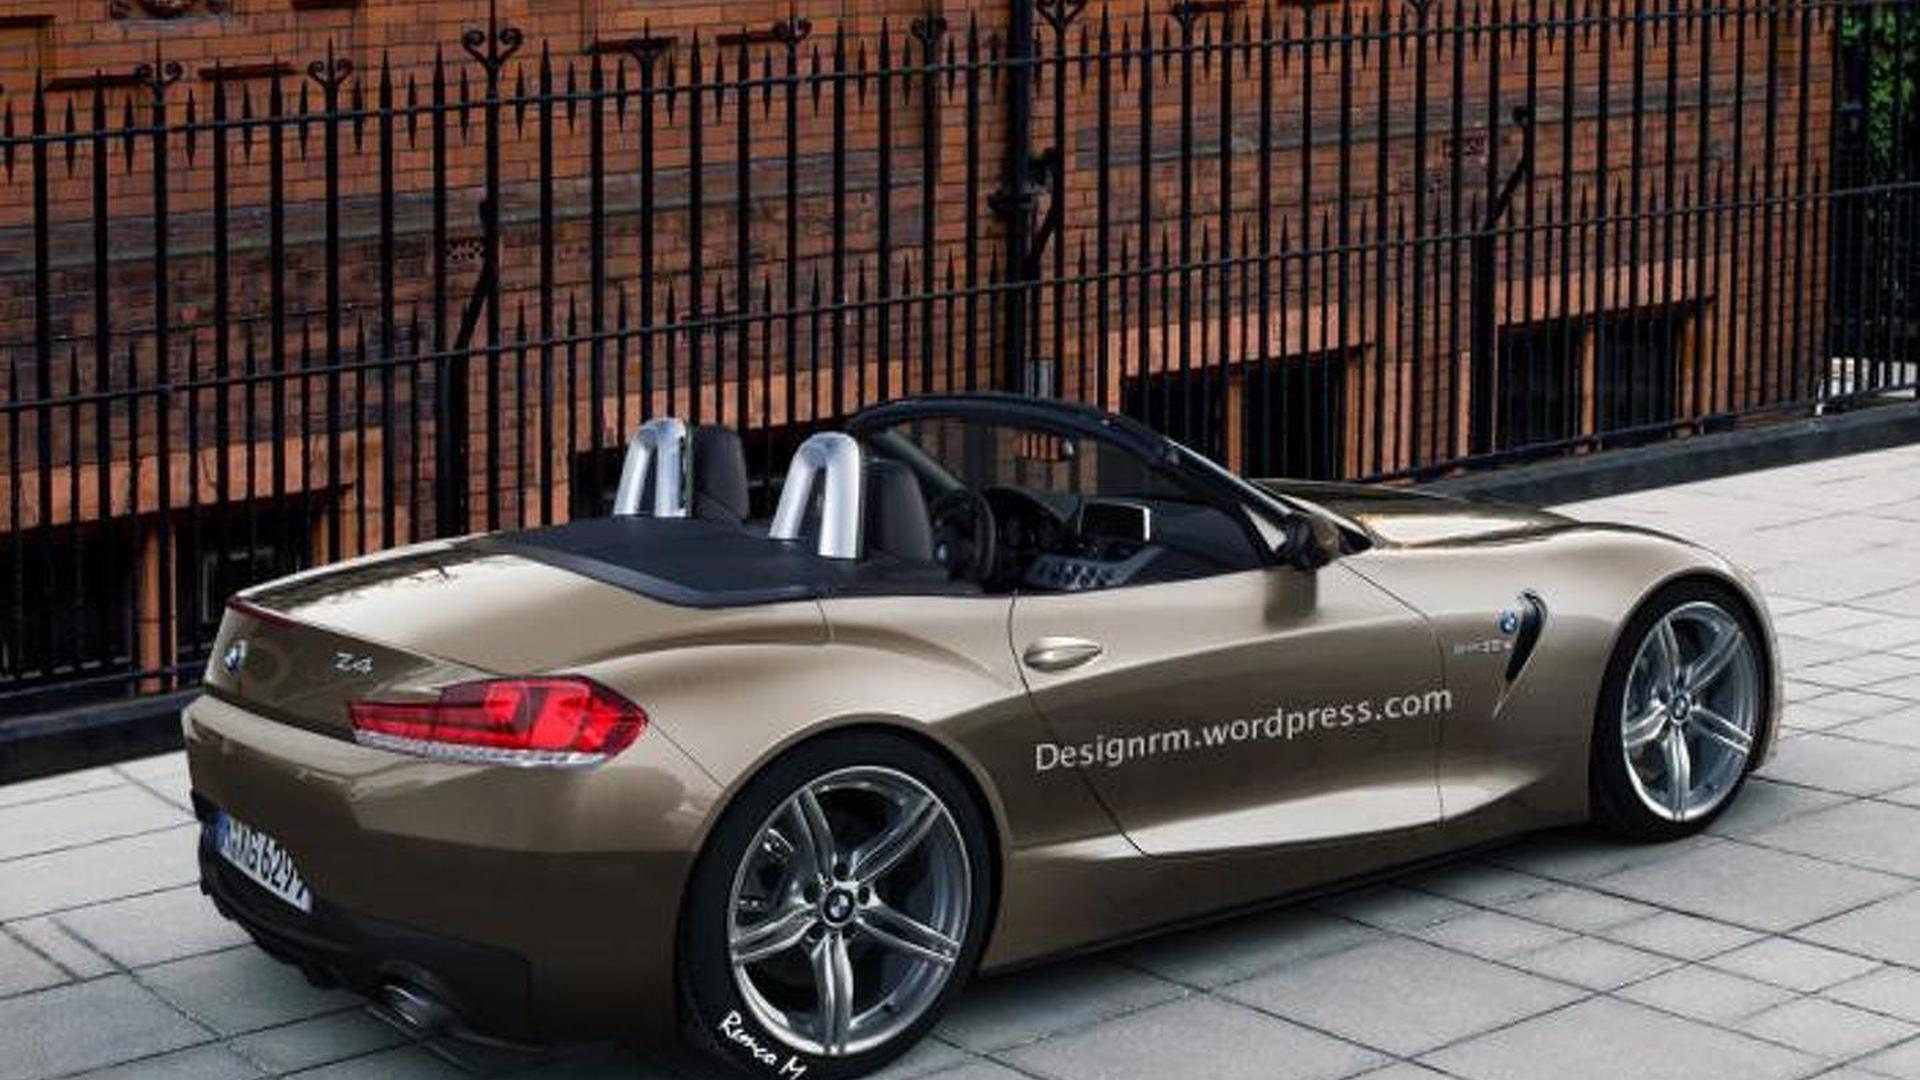 2017 2018 Bmw Z4 Roadster Imagined